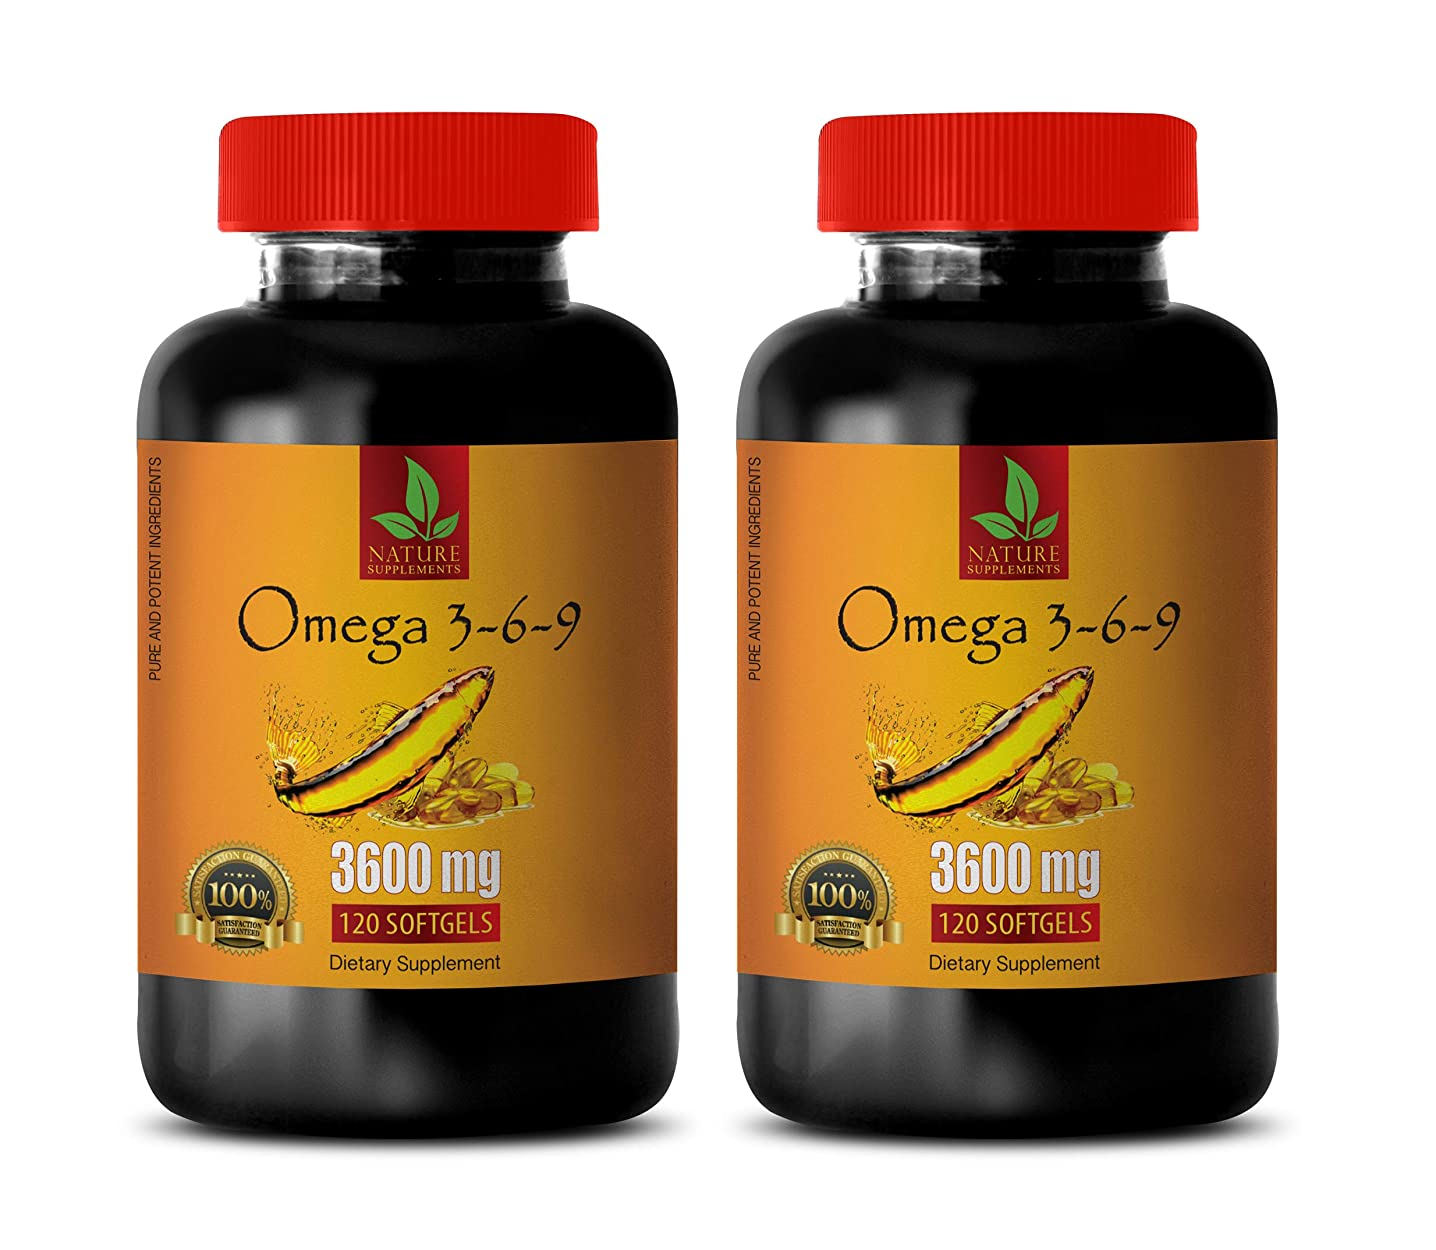 Immunity Booster for Women - Omega 3 6 9 Complex 3600 MG - Omega 3 and 6 Supplements - 2 Bottles 240 Softgels